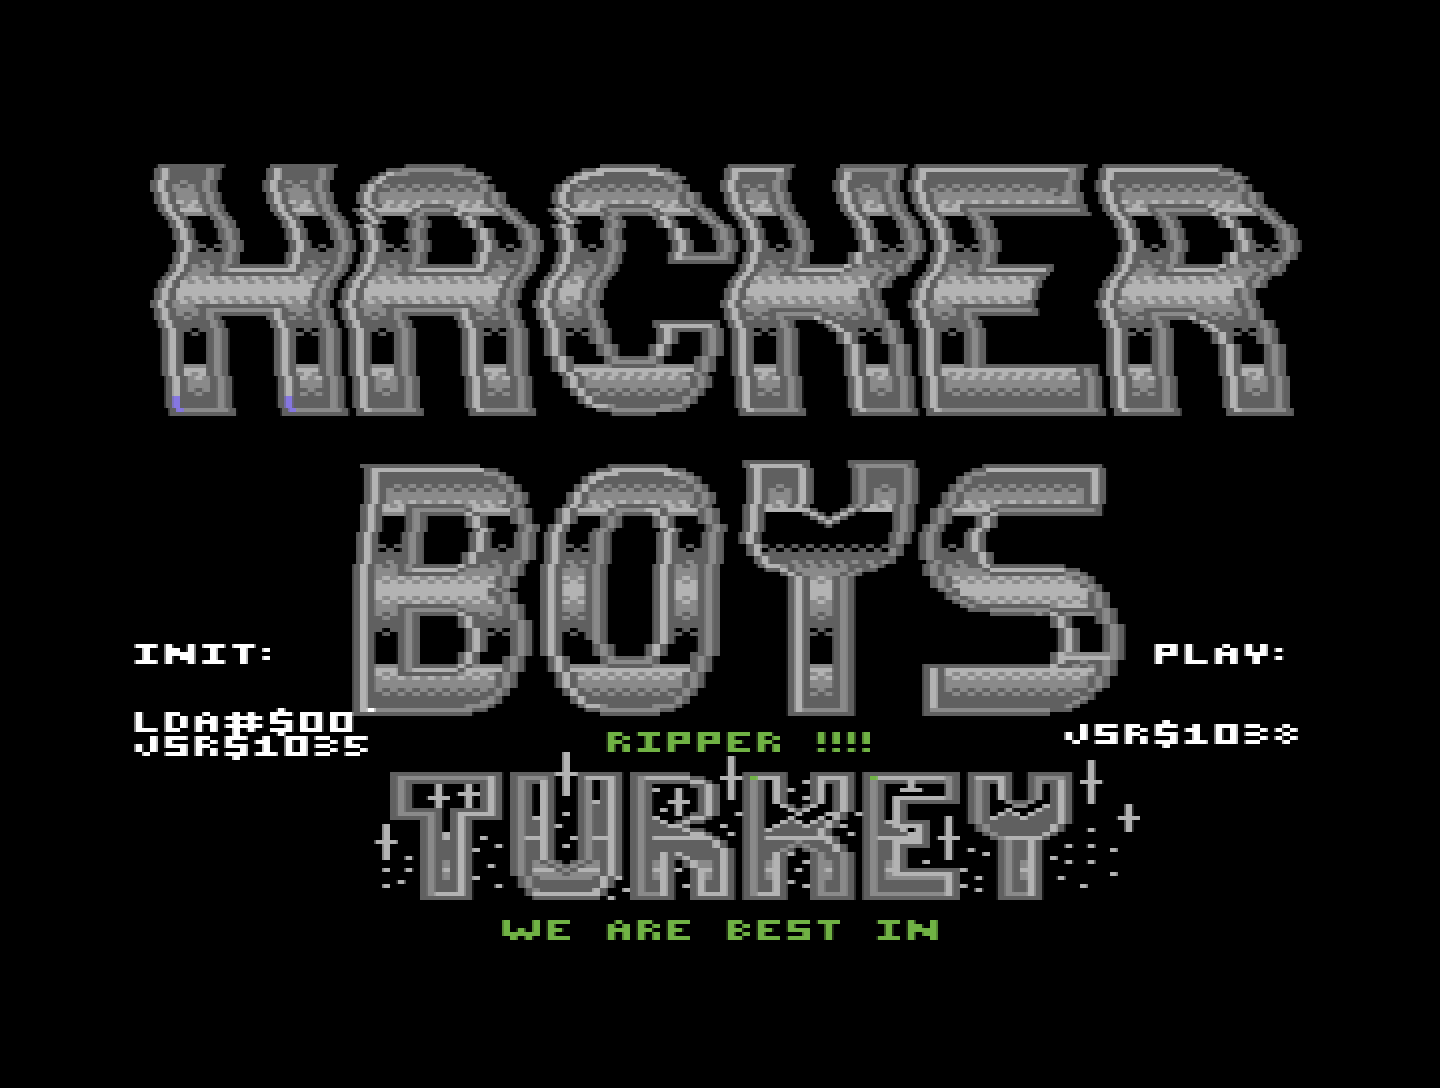 C64 screenshot: the hacker boys music player